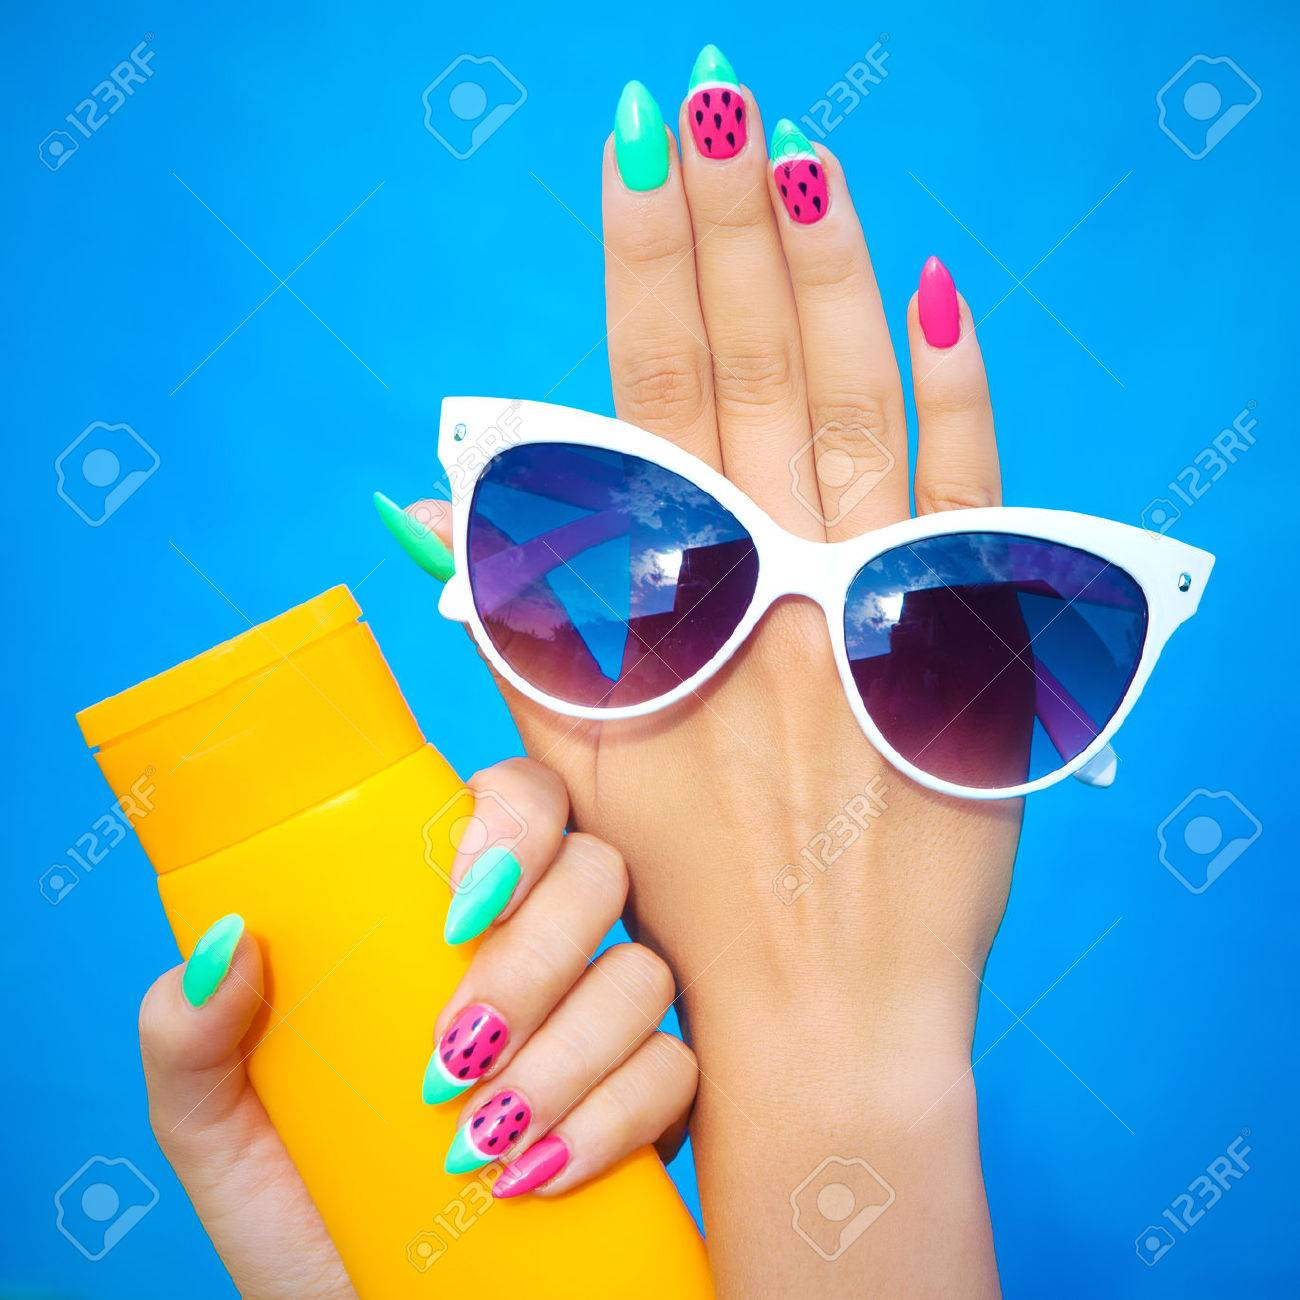 Summer fashion and beauty hand care concept, woman with watermelon gel nails holding sunglasses and sunscreen lotion - 56915008